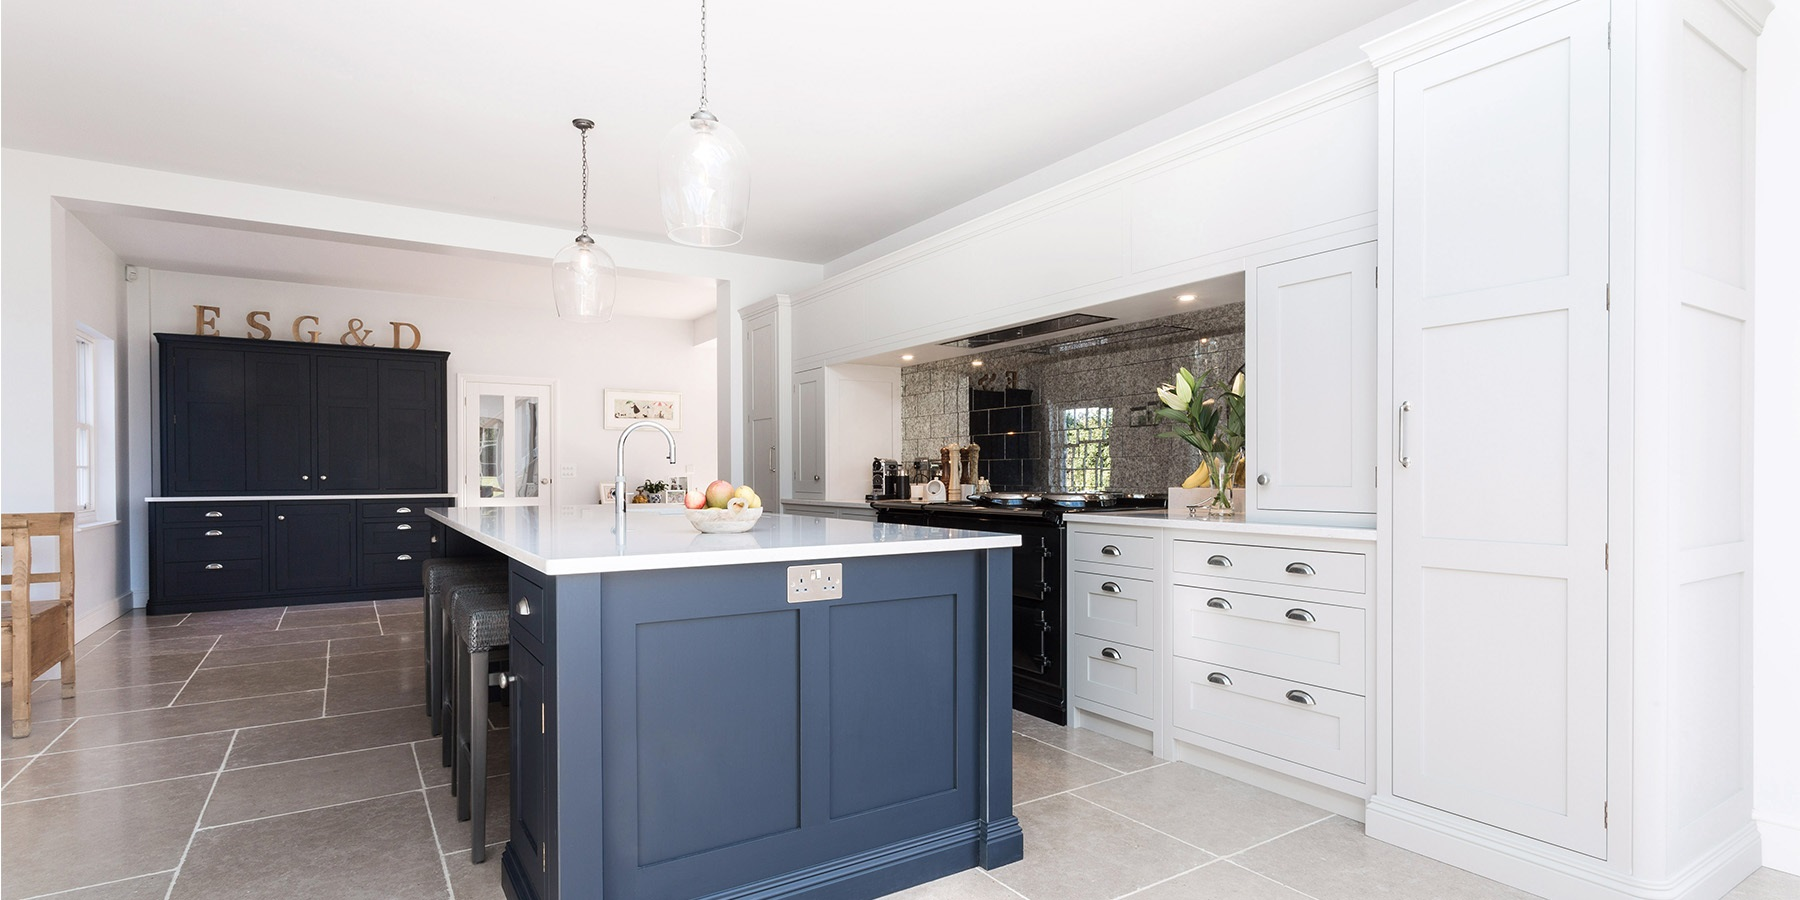 Luxury Open Plan Shaker Kitchen - Burlanes bespoke Wellsdown kitchen in navy and grey, with central kitchen island and breakfast pantry.